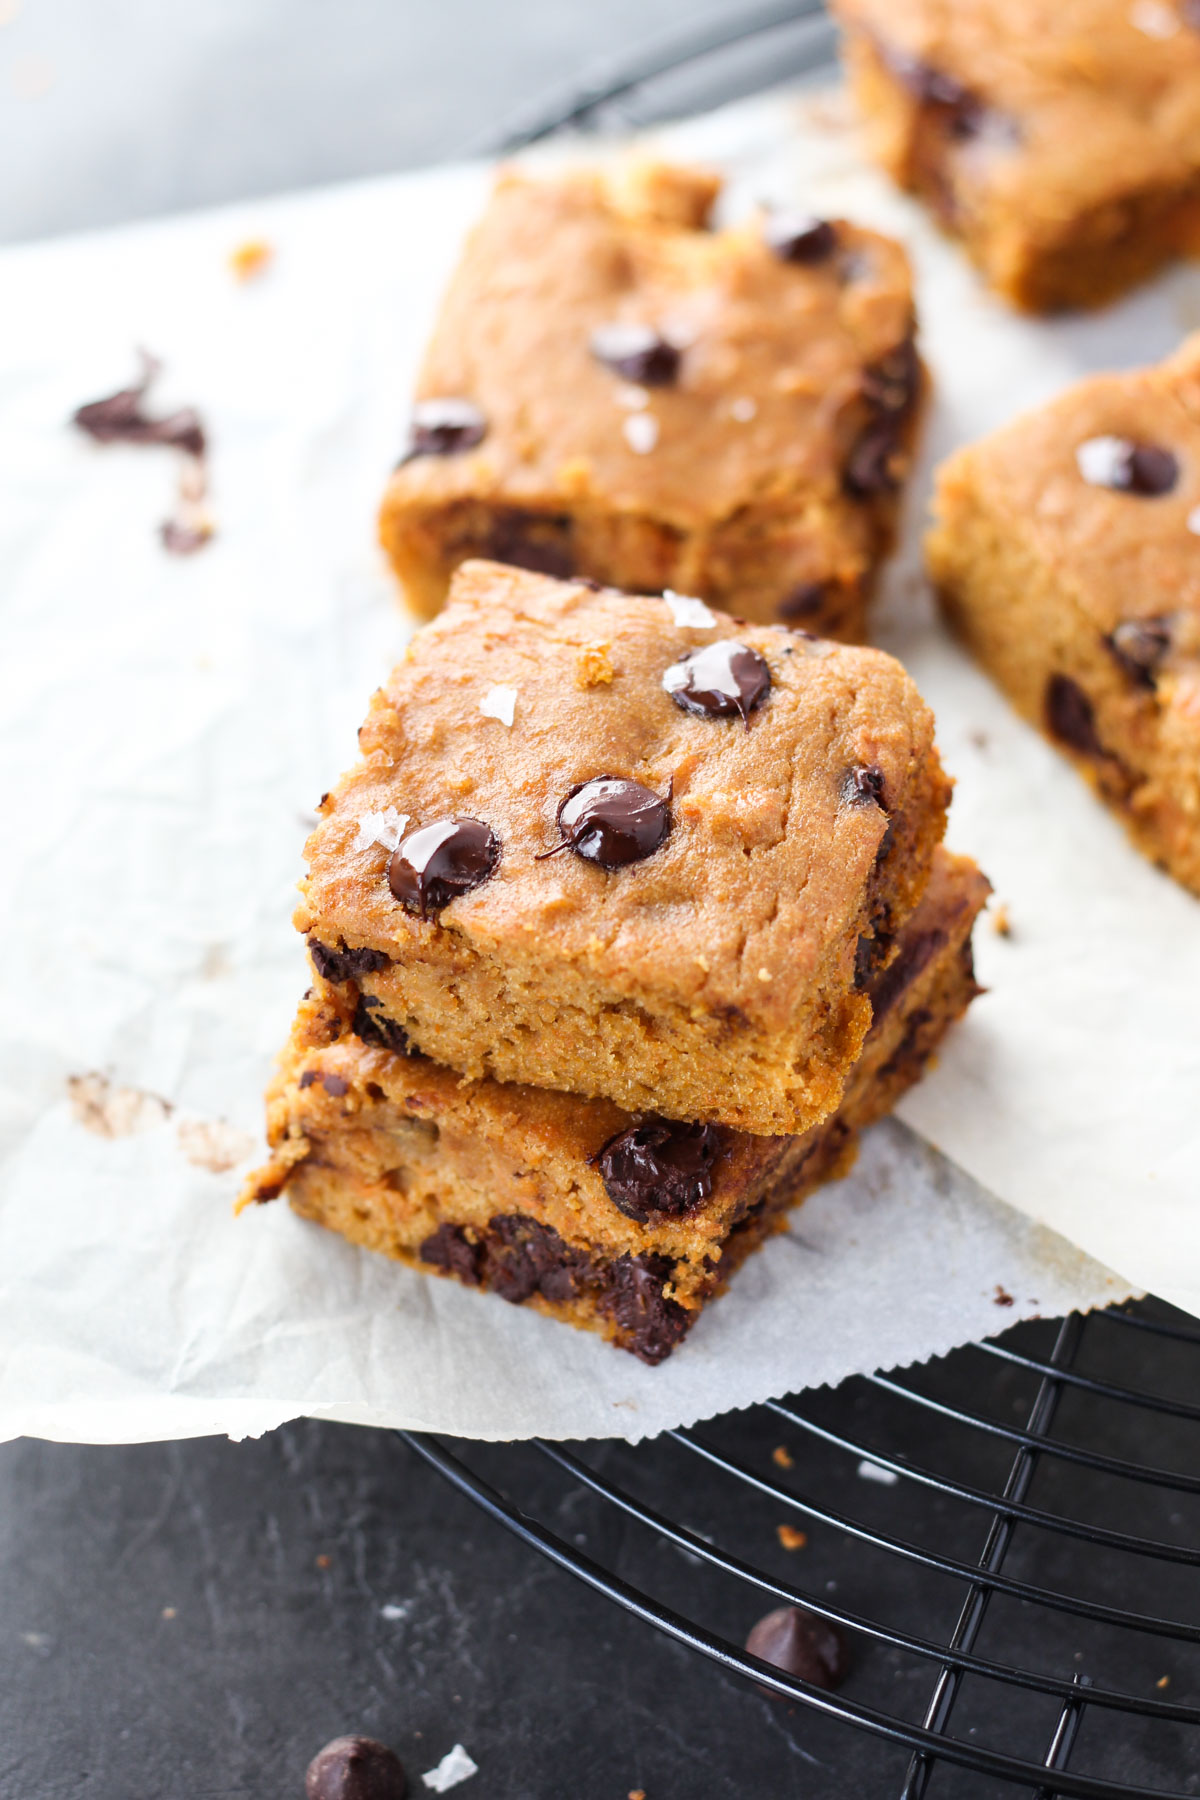 Cookie bars stacked on top of each other.